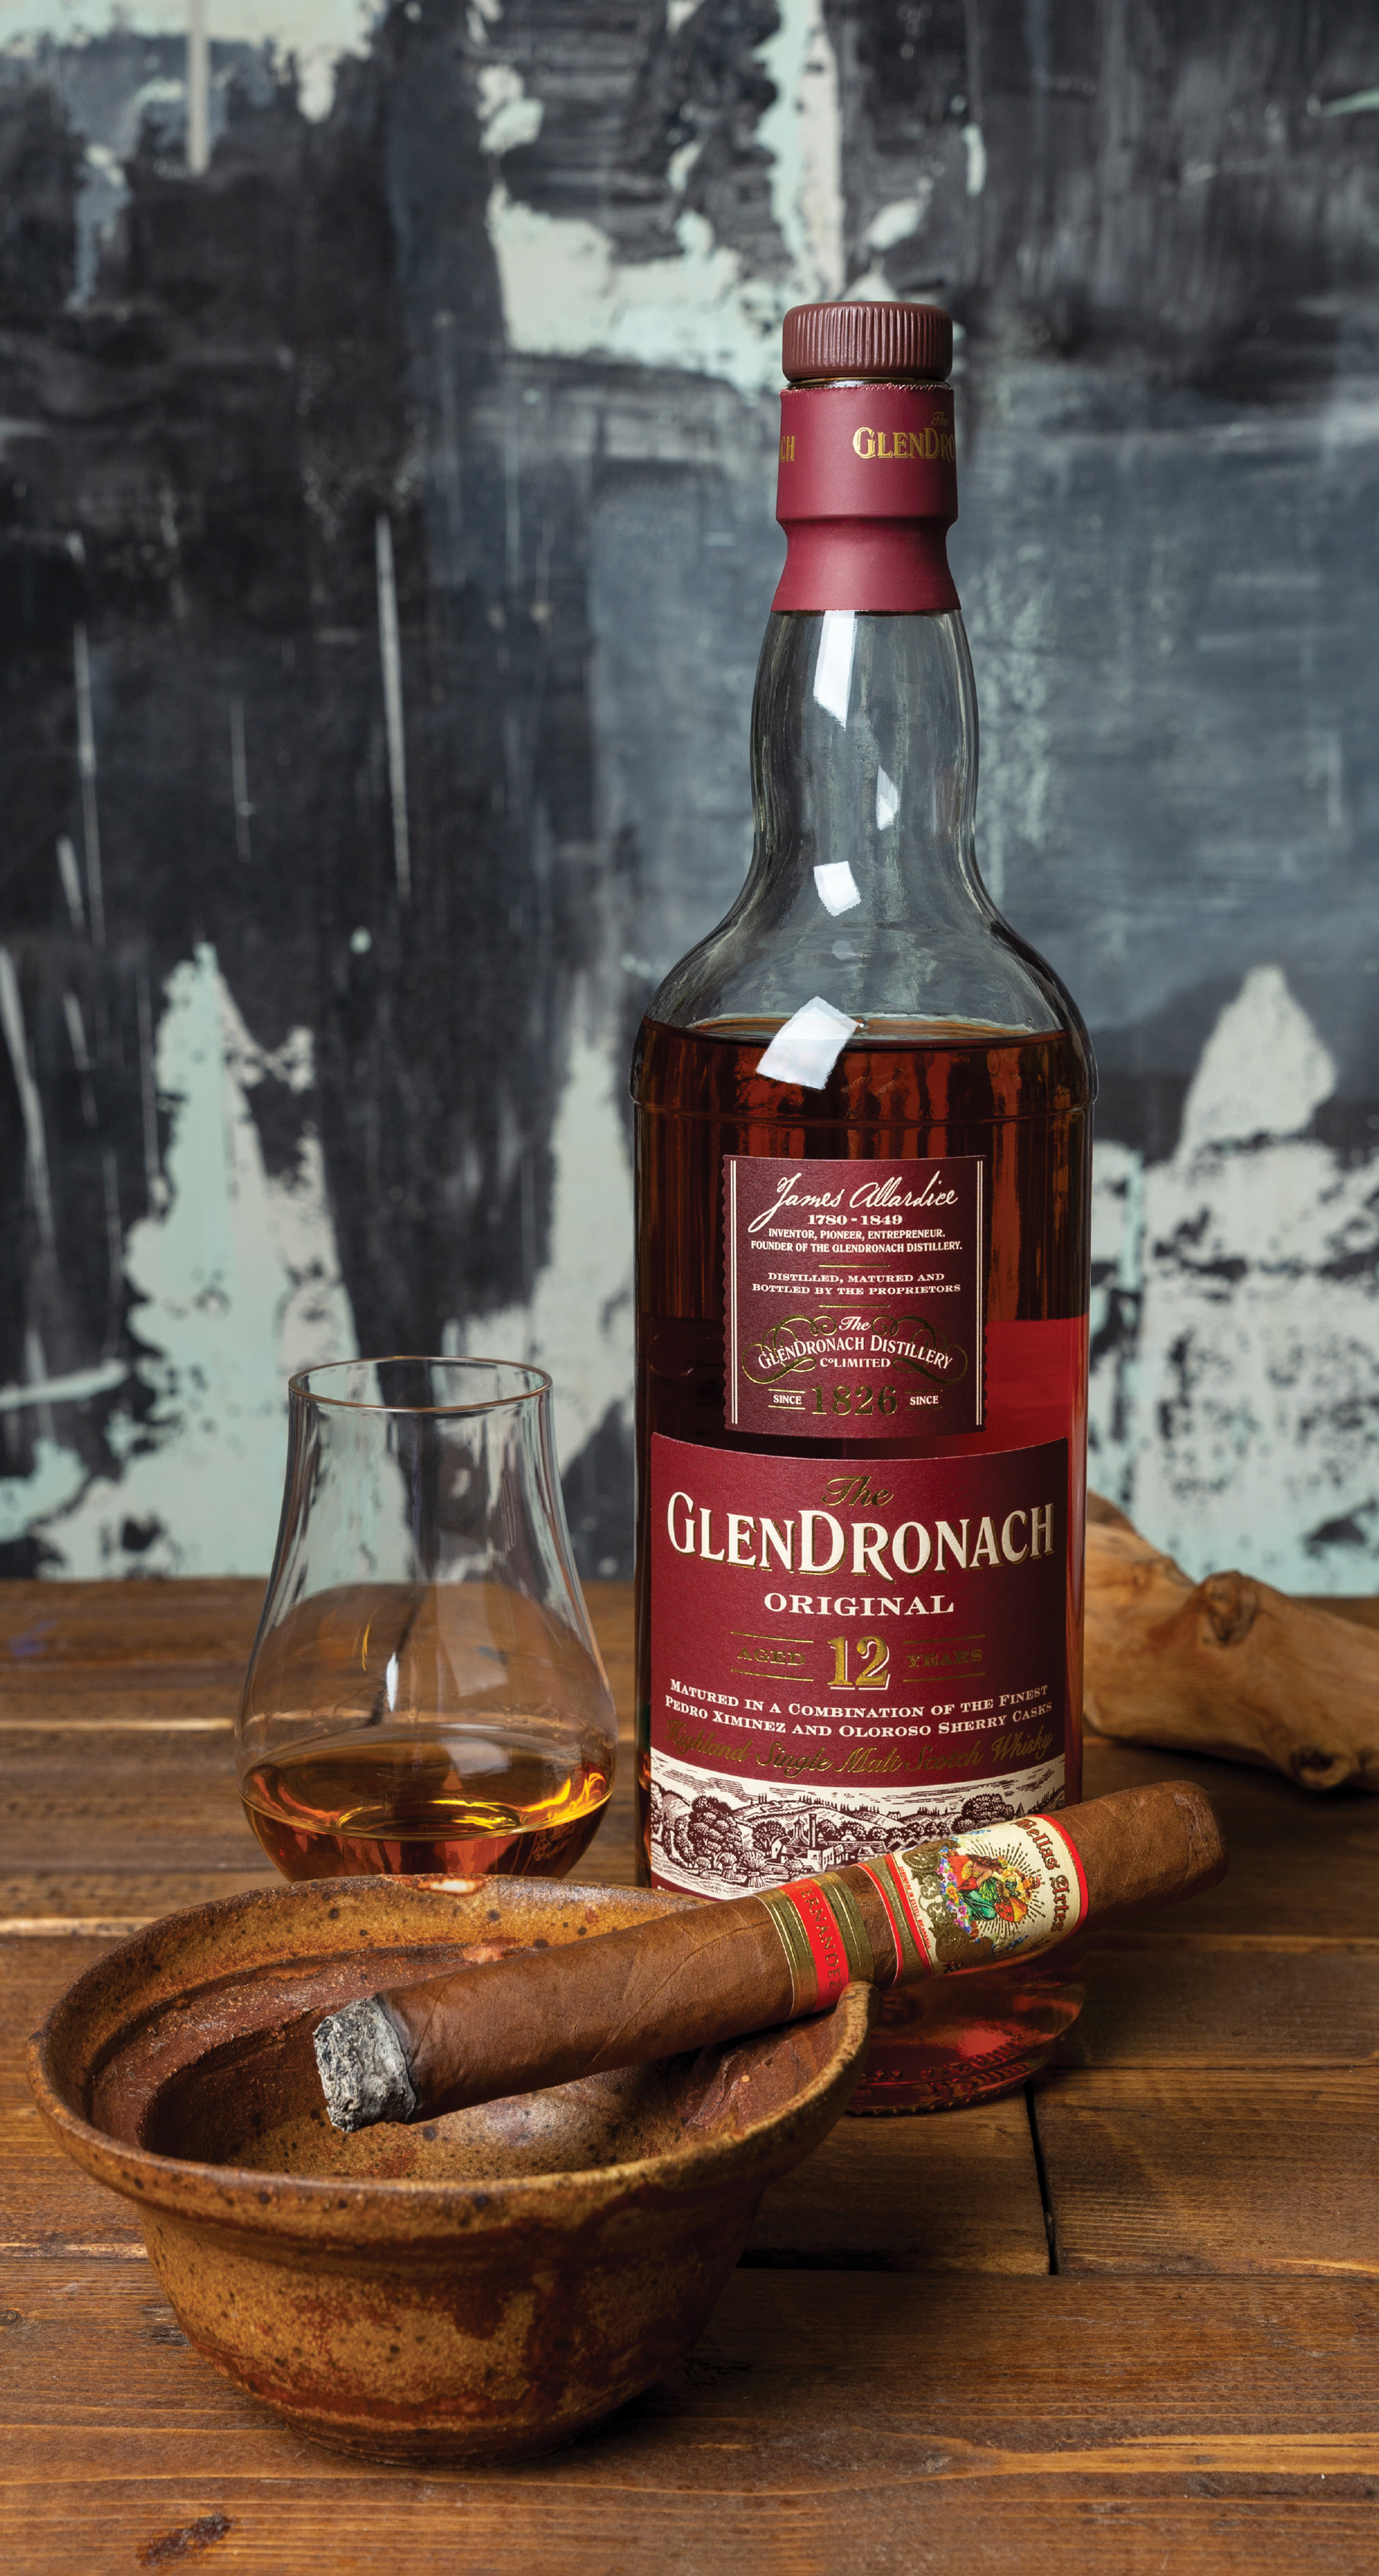 AJ Fernandez Bellas Artes / The GlenDronach Original Aged 12 Years